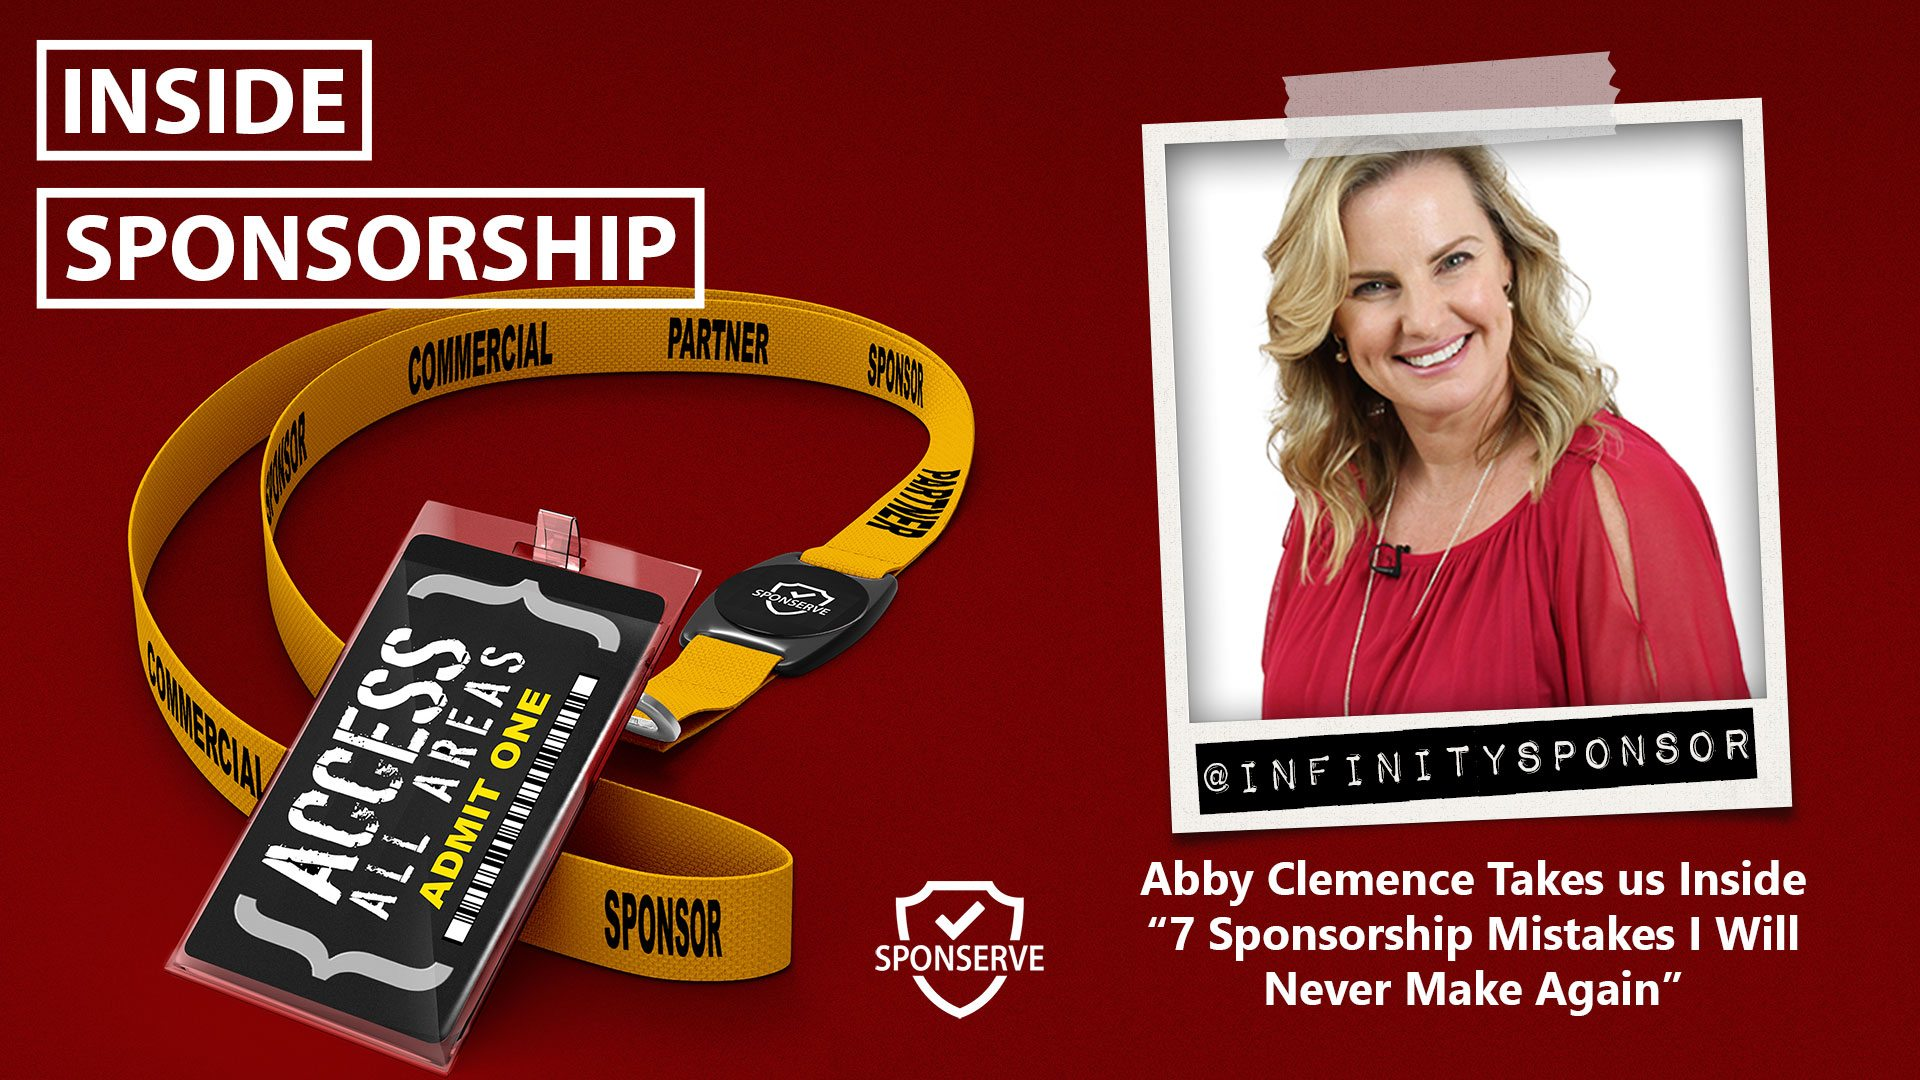 Inside Sponsorship - Mistakes - Abby Clemence from Infinity Sponsorship